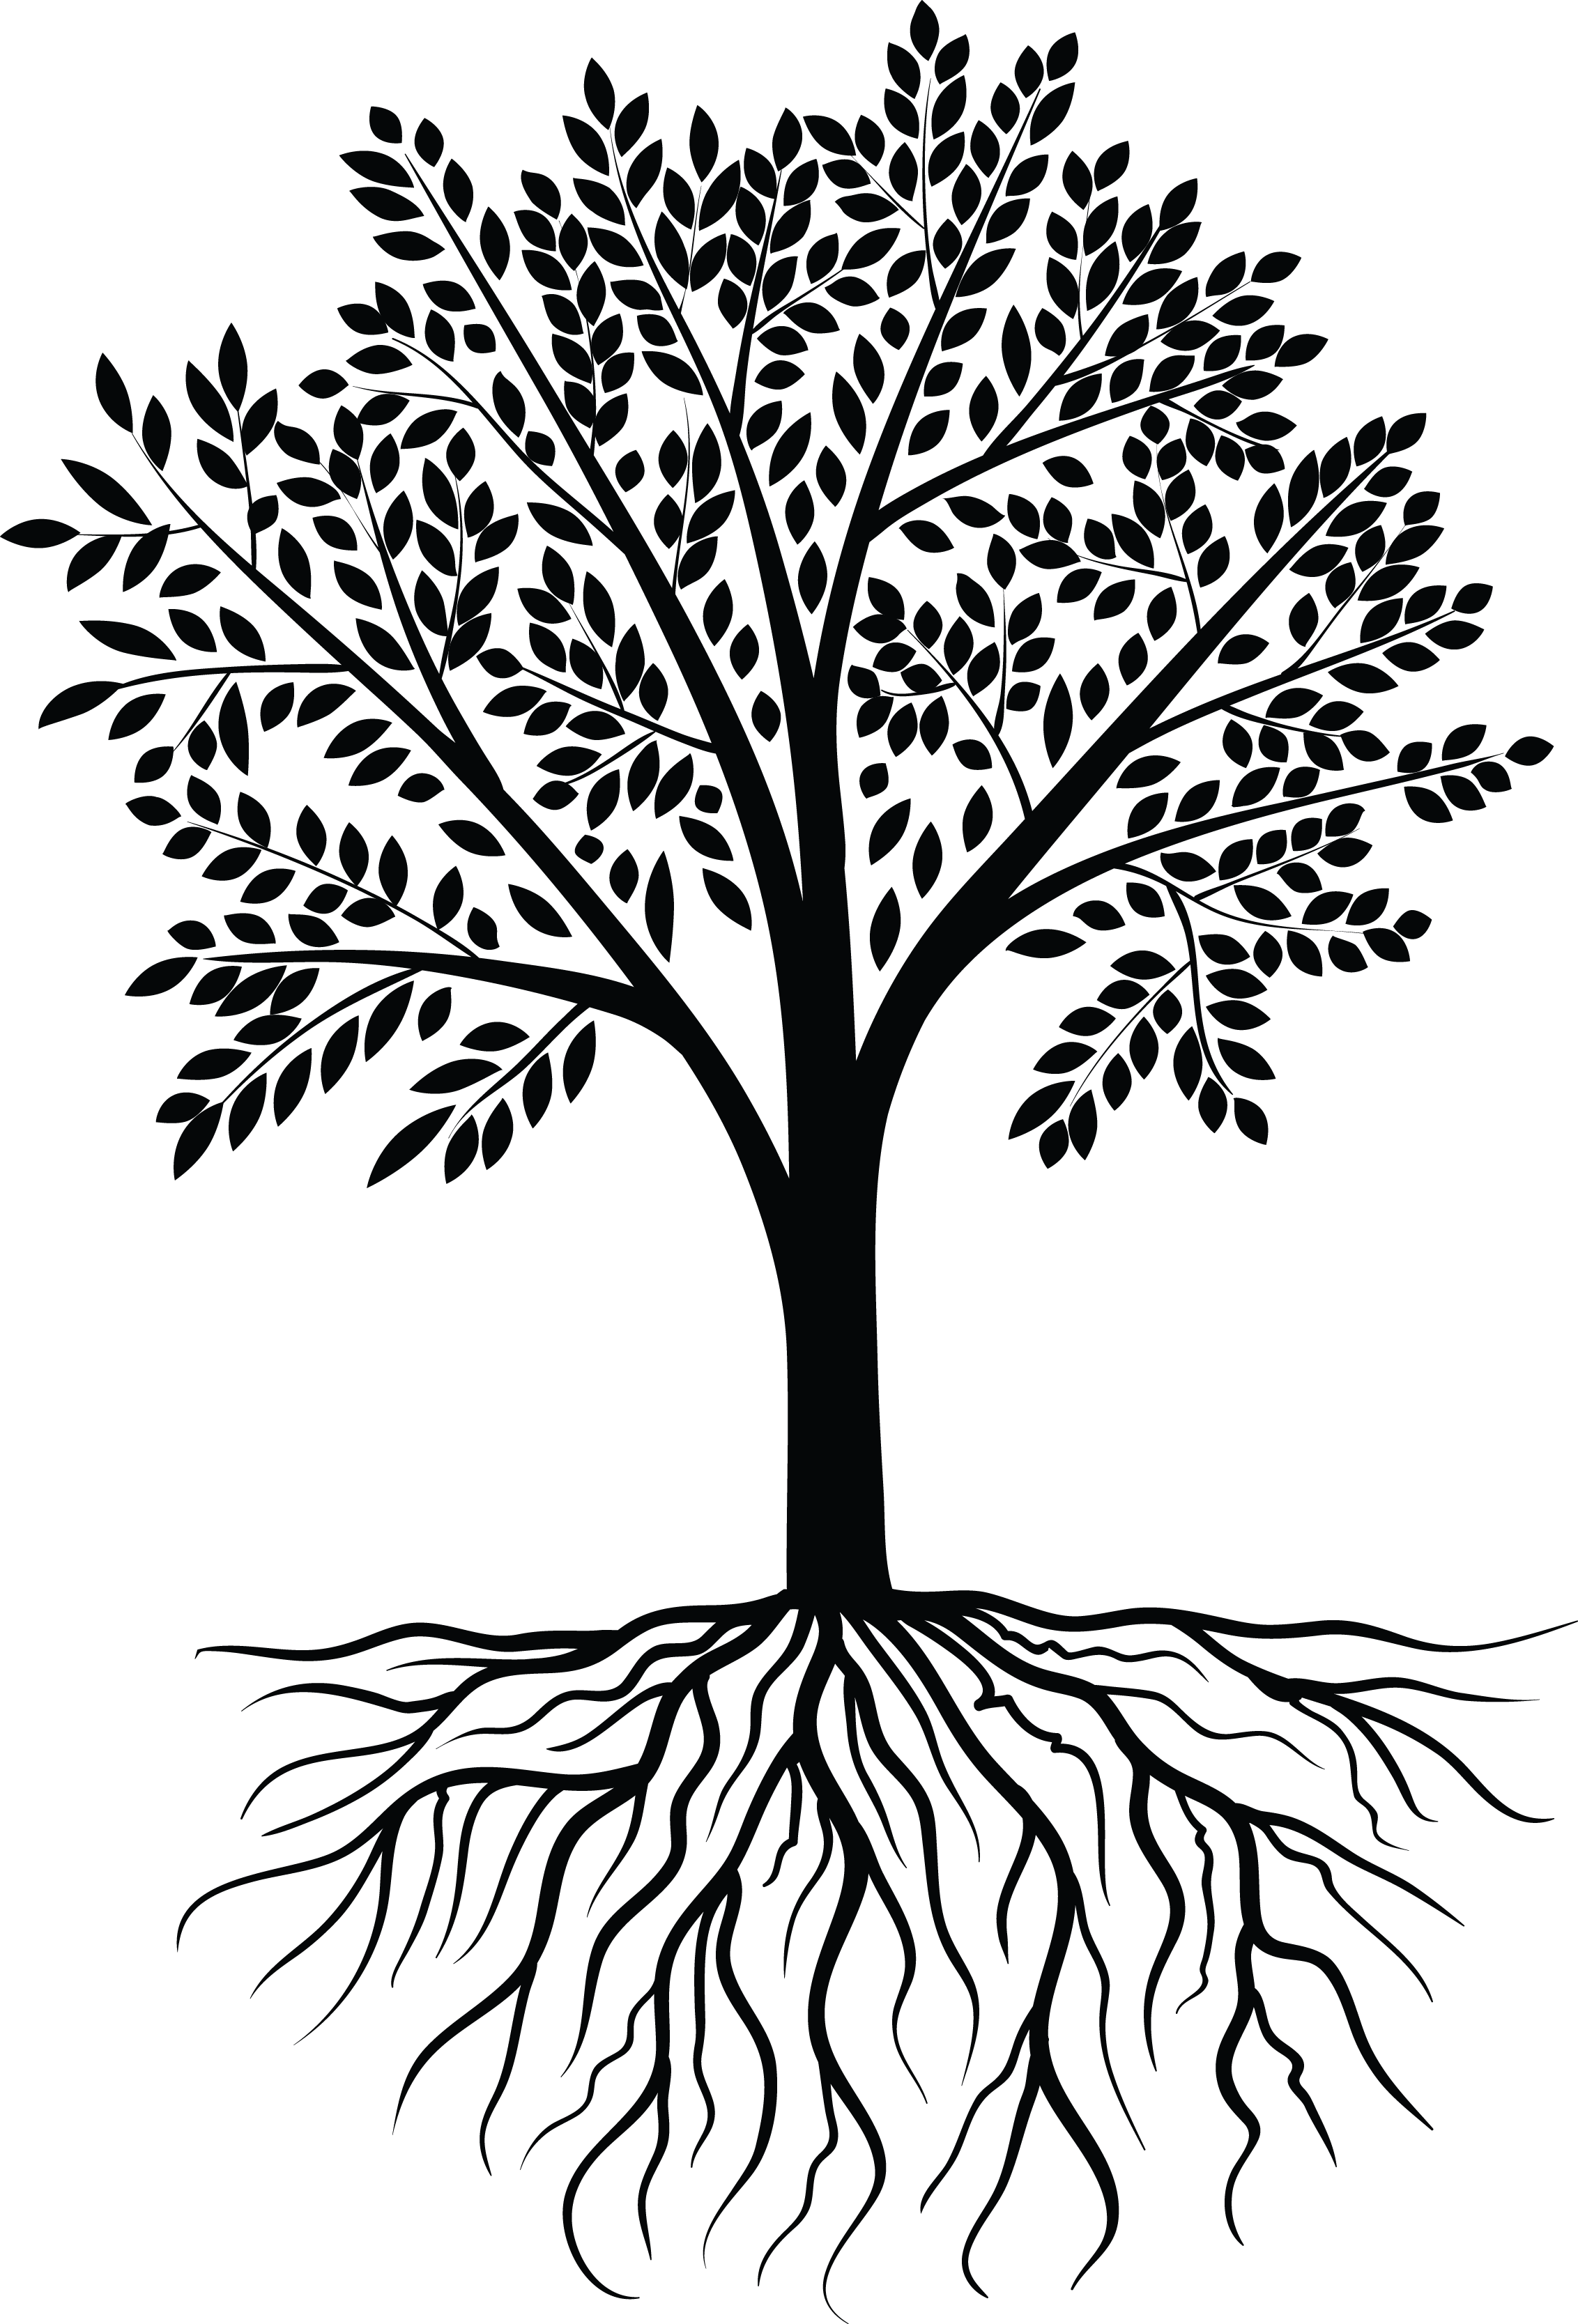 2264x3335 Black And White Tree Of Life Black And White Library